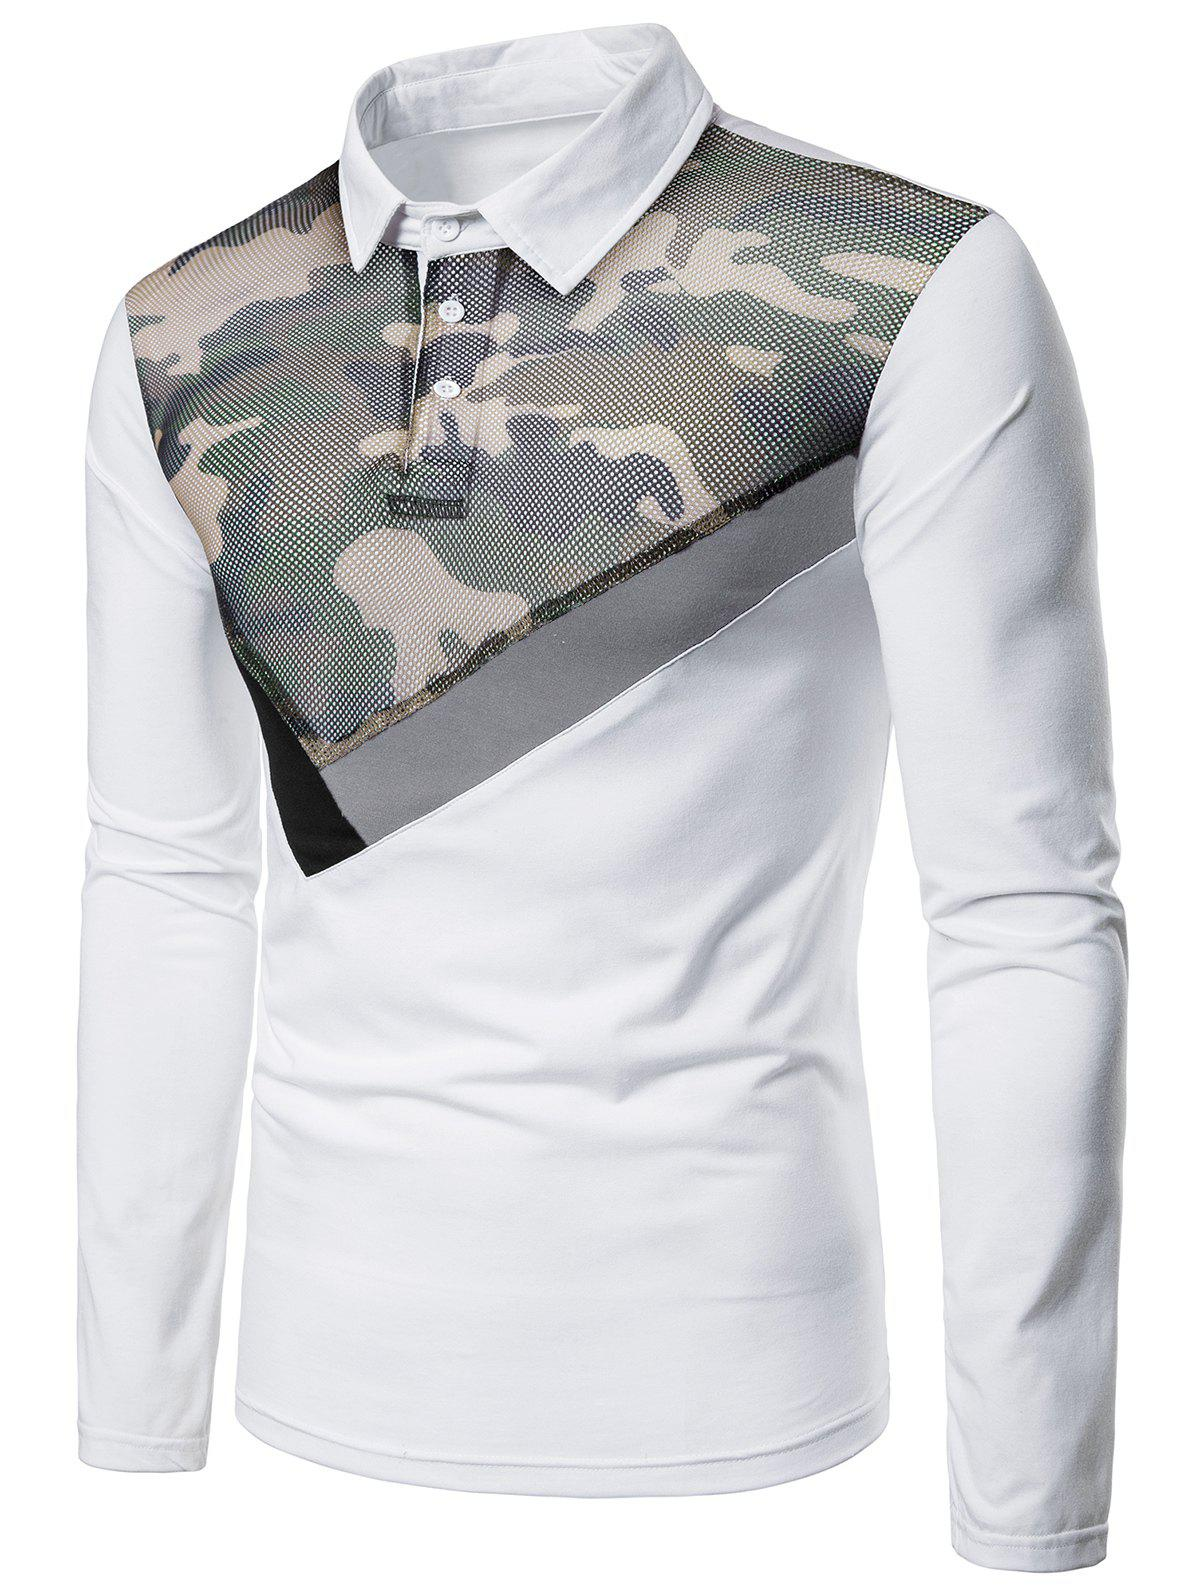 Store Top Mesh Camo Fabric Stripes Patch Polo Shirt